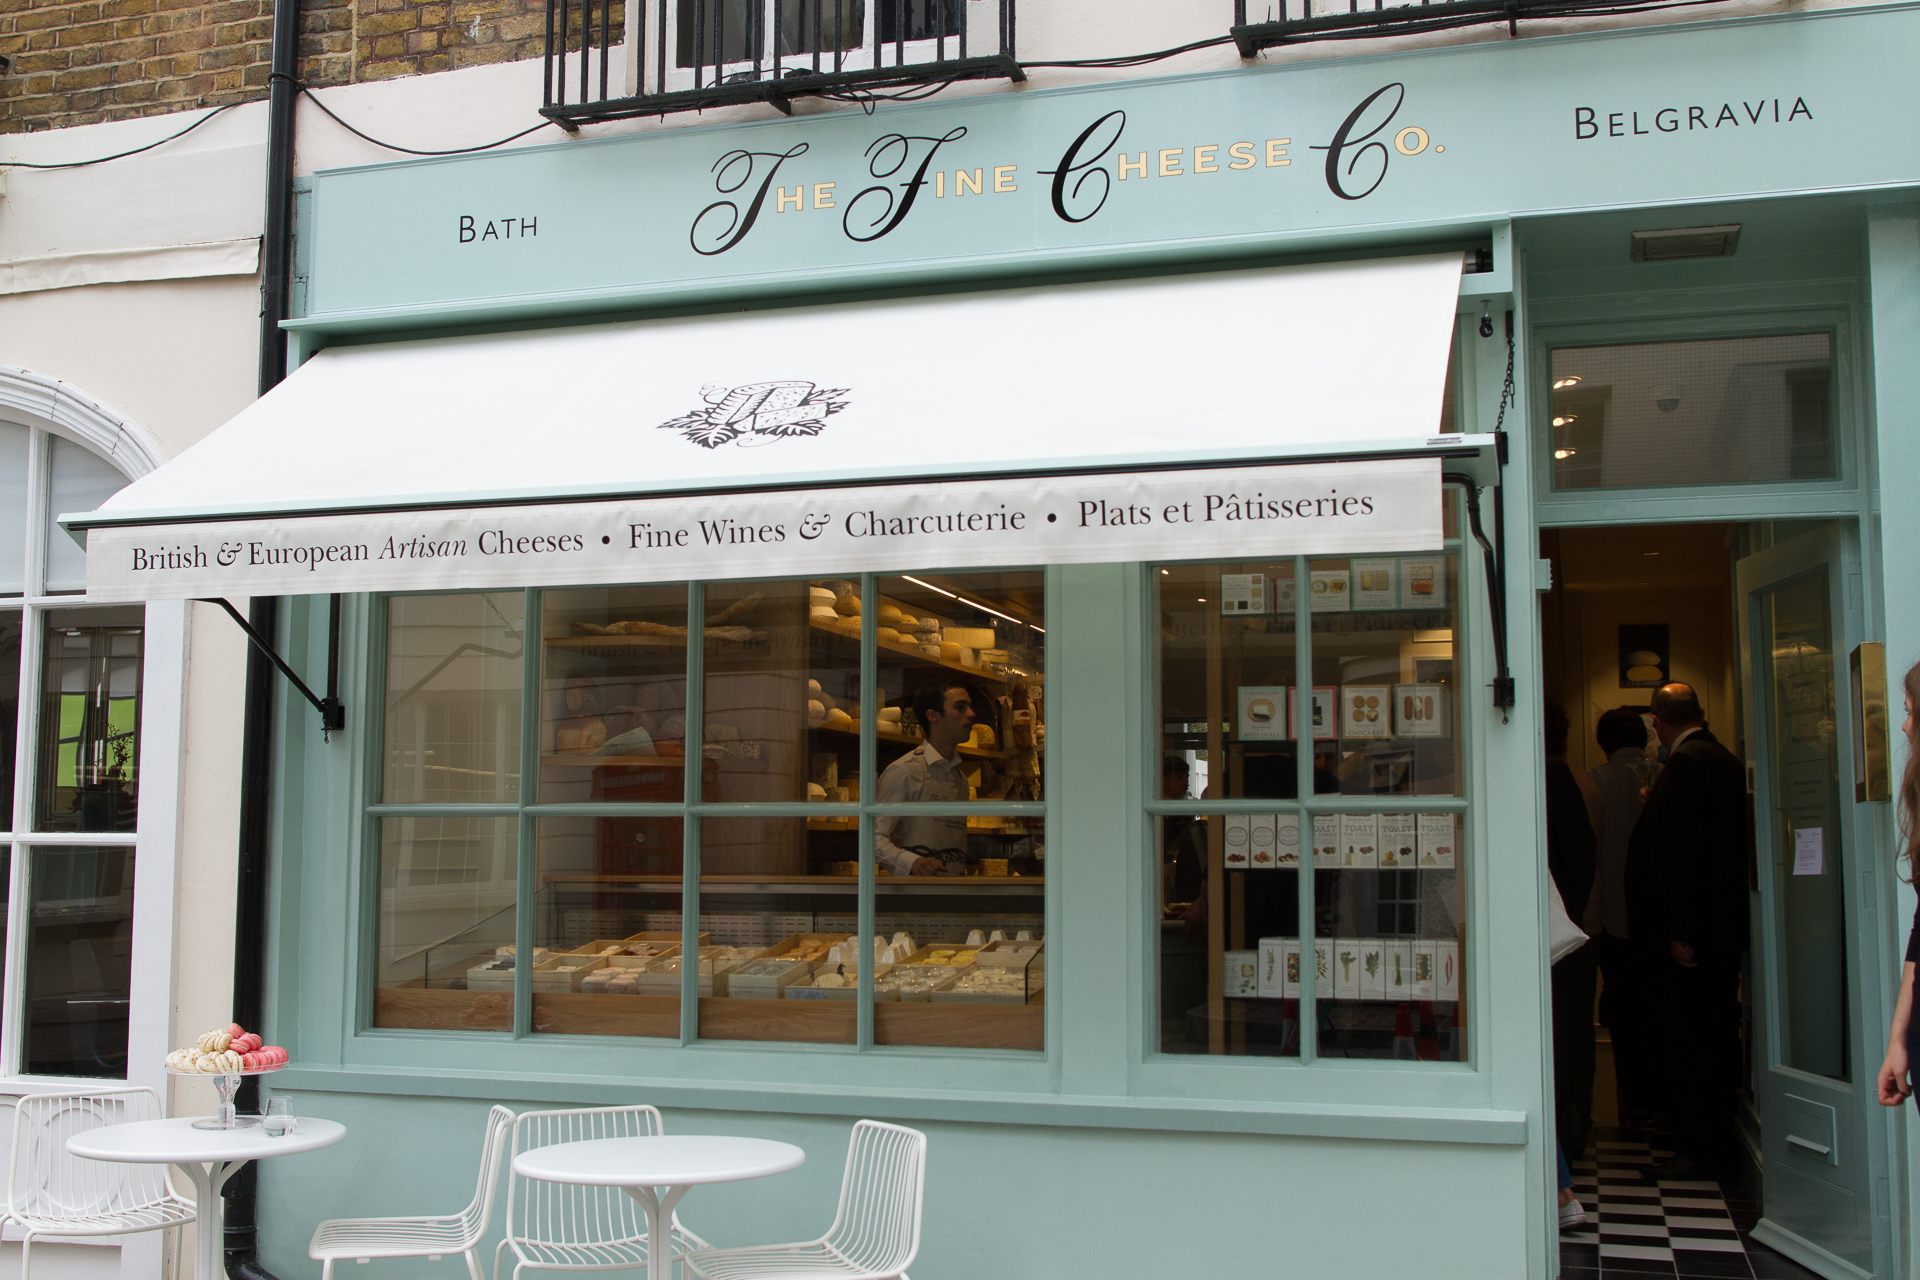 Our London cheese shop